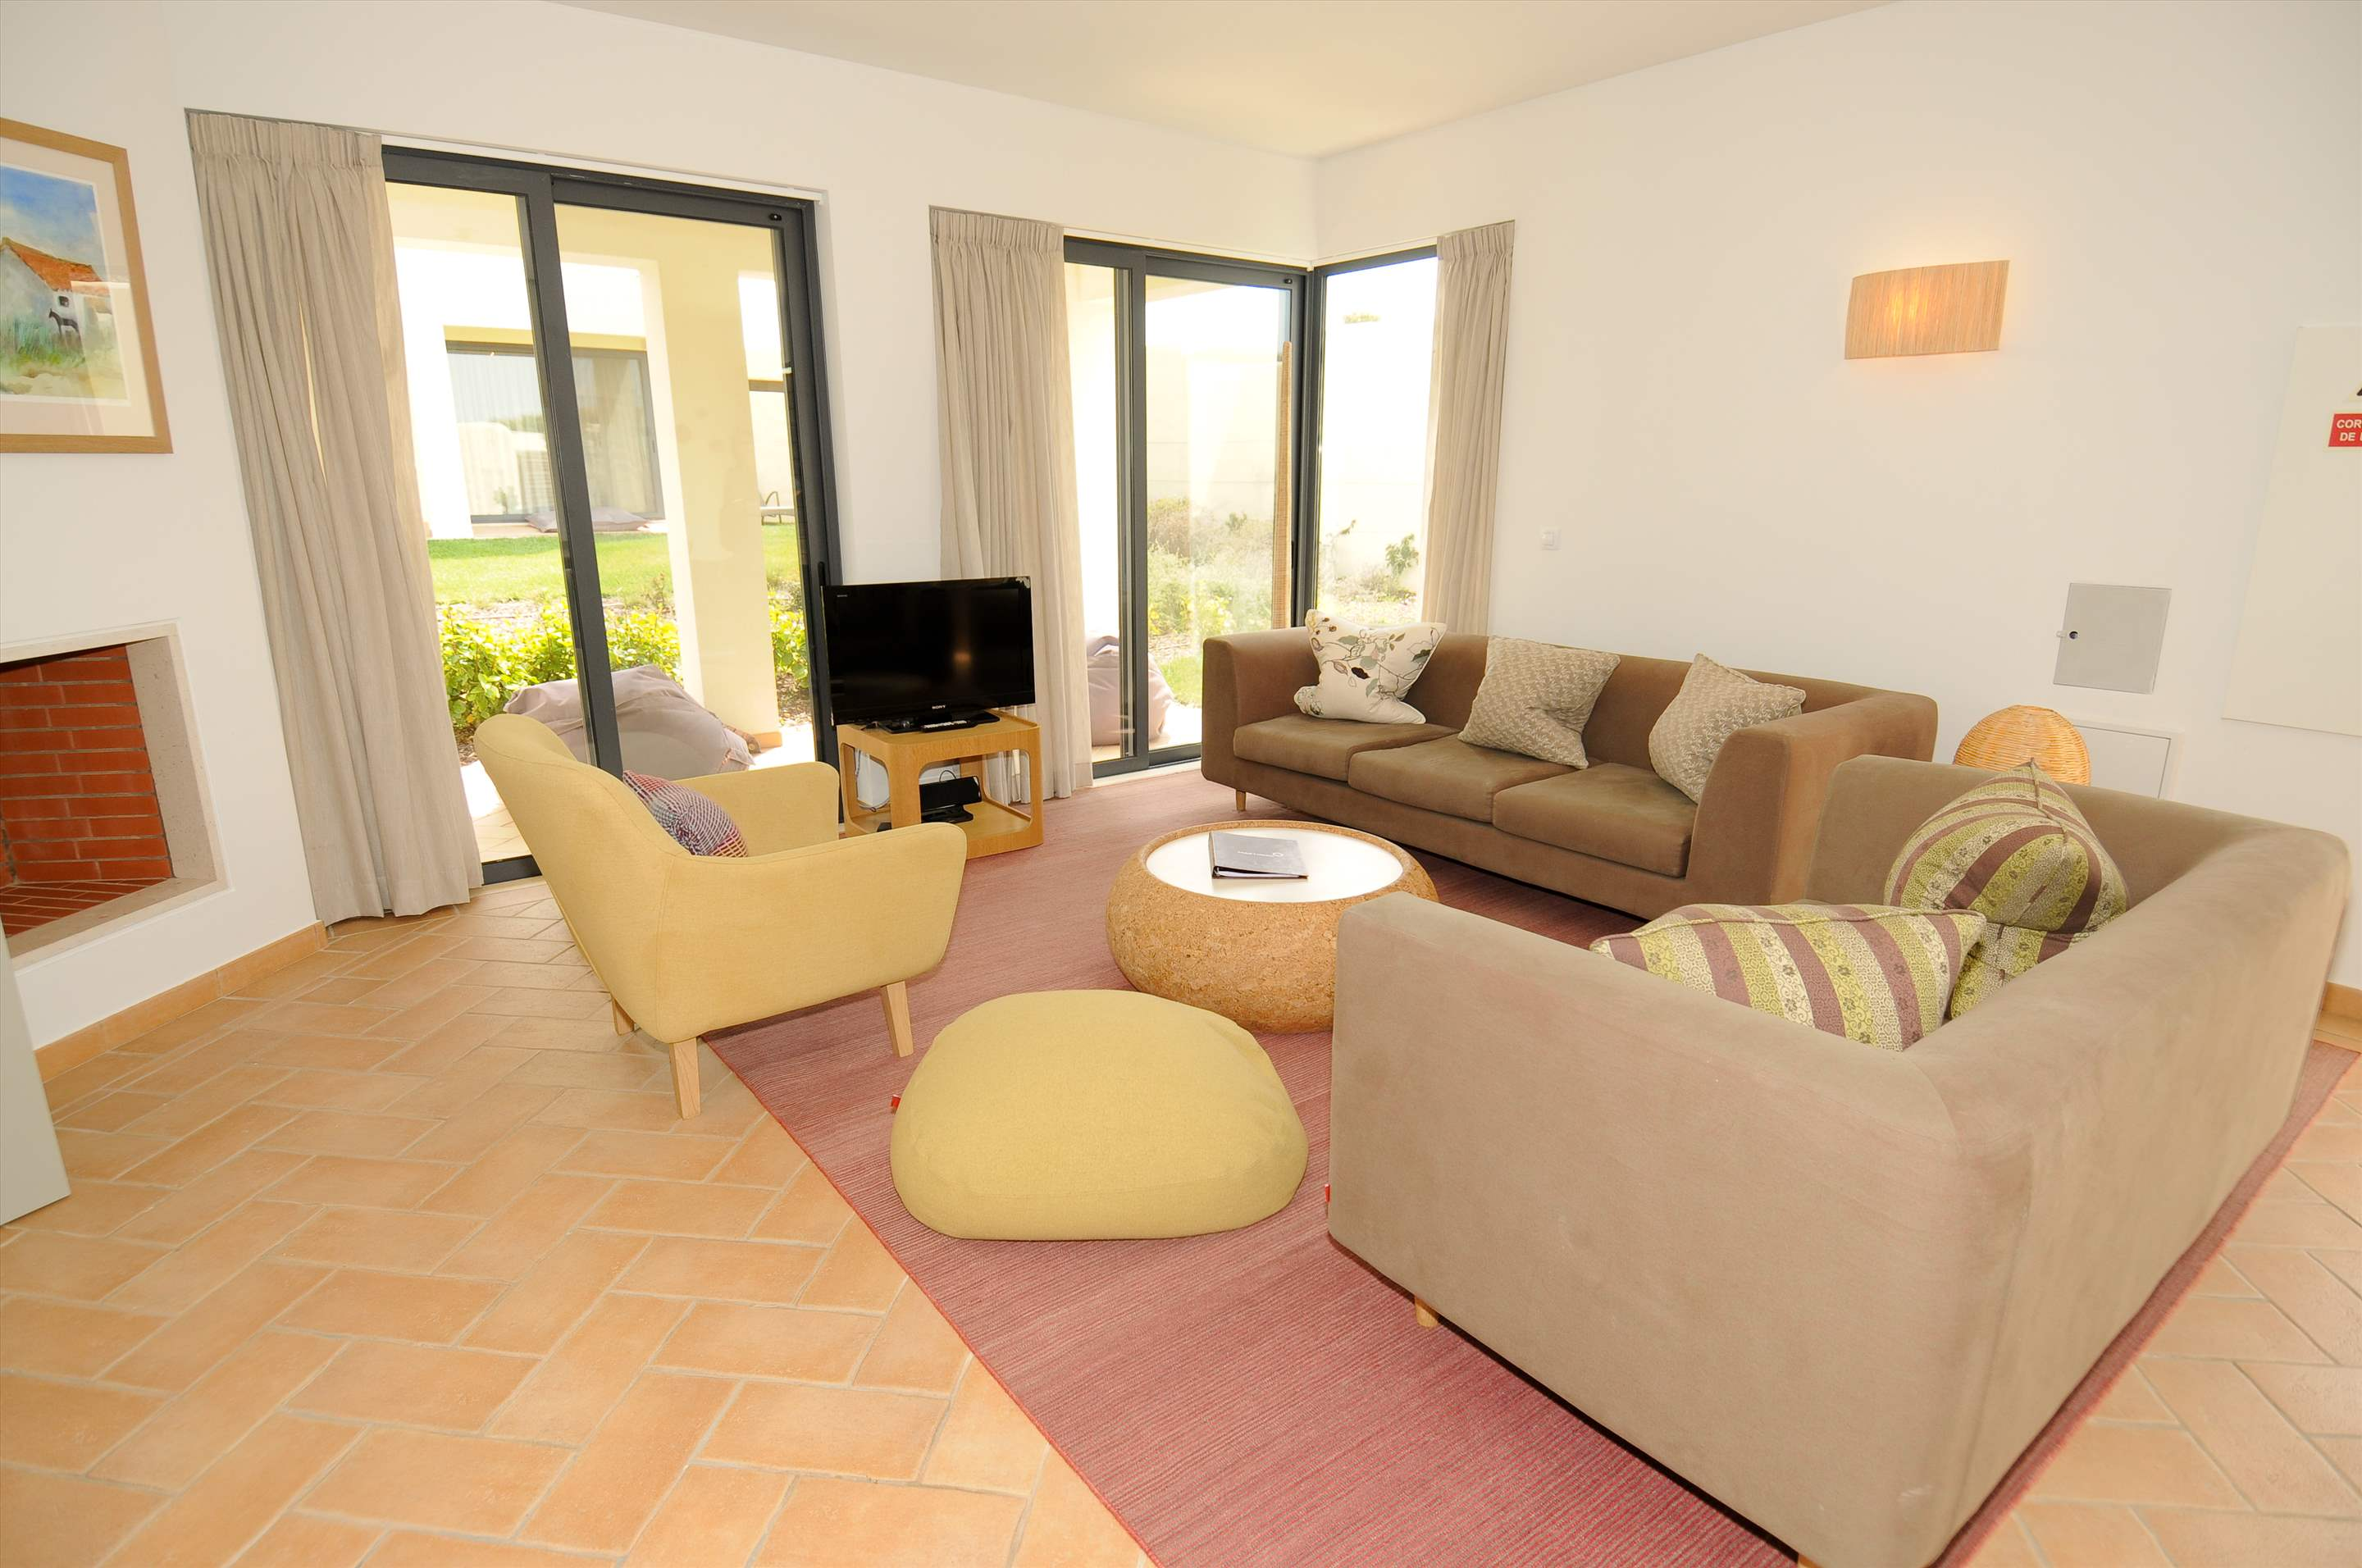 Martinhal Village Garden House, Grand Deluxe Two Bedroom, 2 bedroom villa in Martinhal Sagres, Algarve